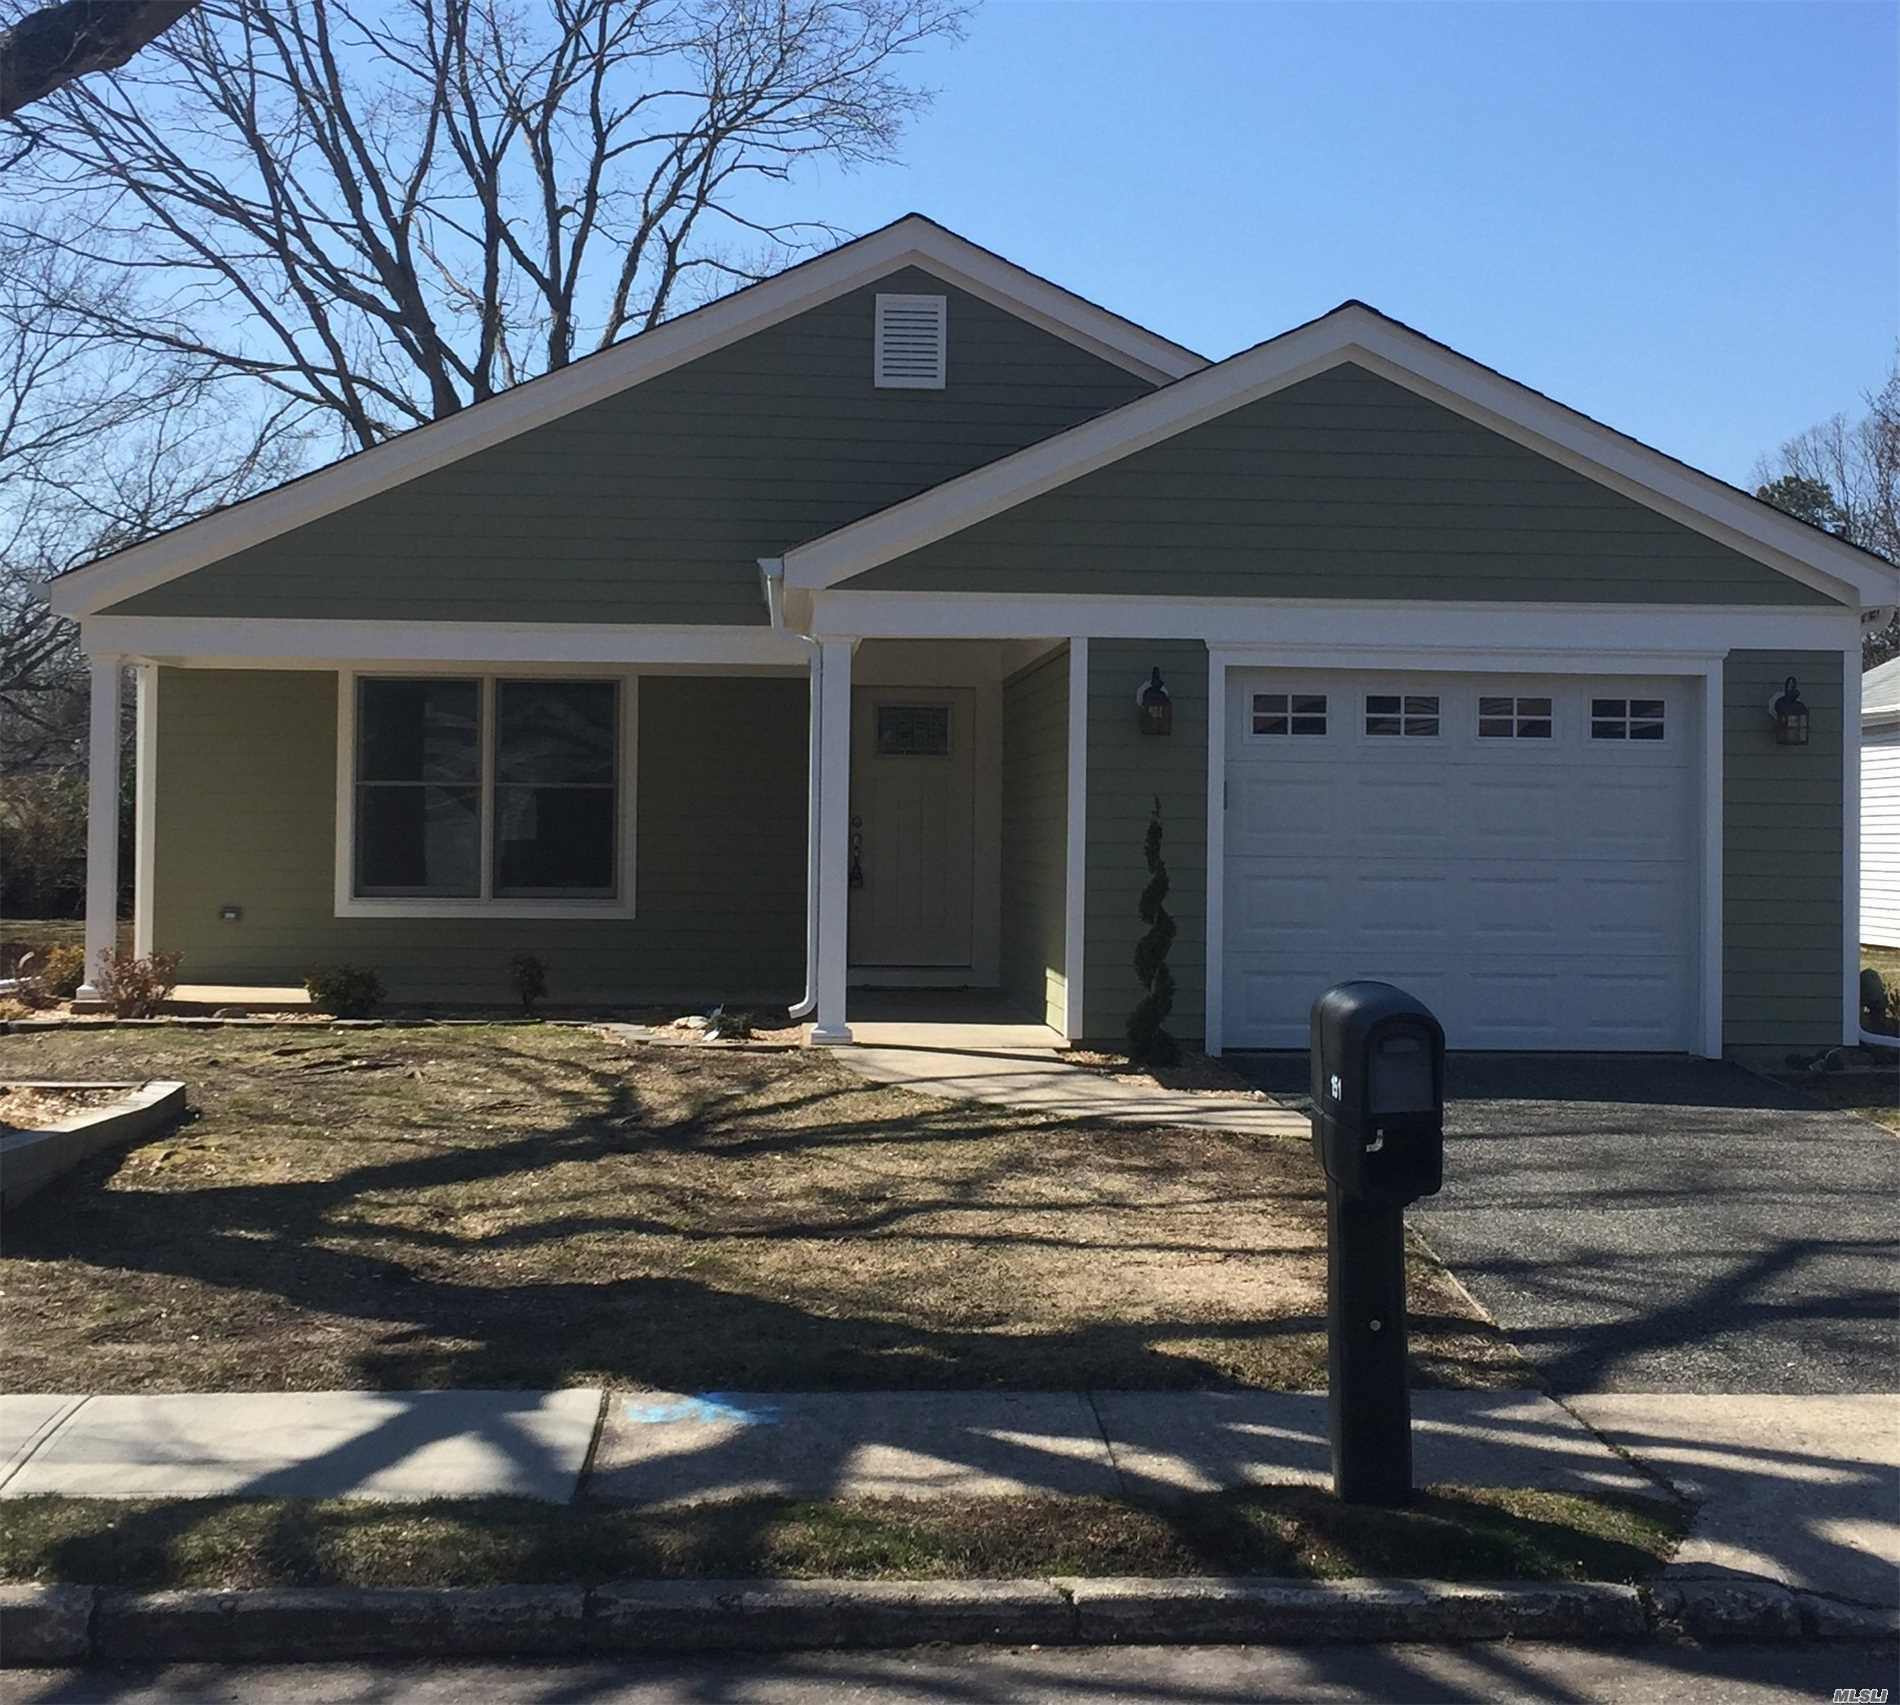 This home requires you just to move in, everything has been done! It is an expanded Ardmore model with an open and spacious floor plan. This home has been completely rebuilt with an insulated flooring system throughout the entire house. This home has Hardy Plank siding, new Anderson windows, a new roof, and so much more. Leisure Knoll is an active community, secure this home now.